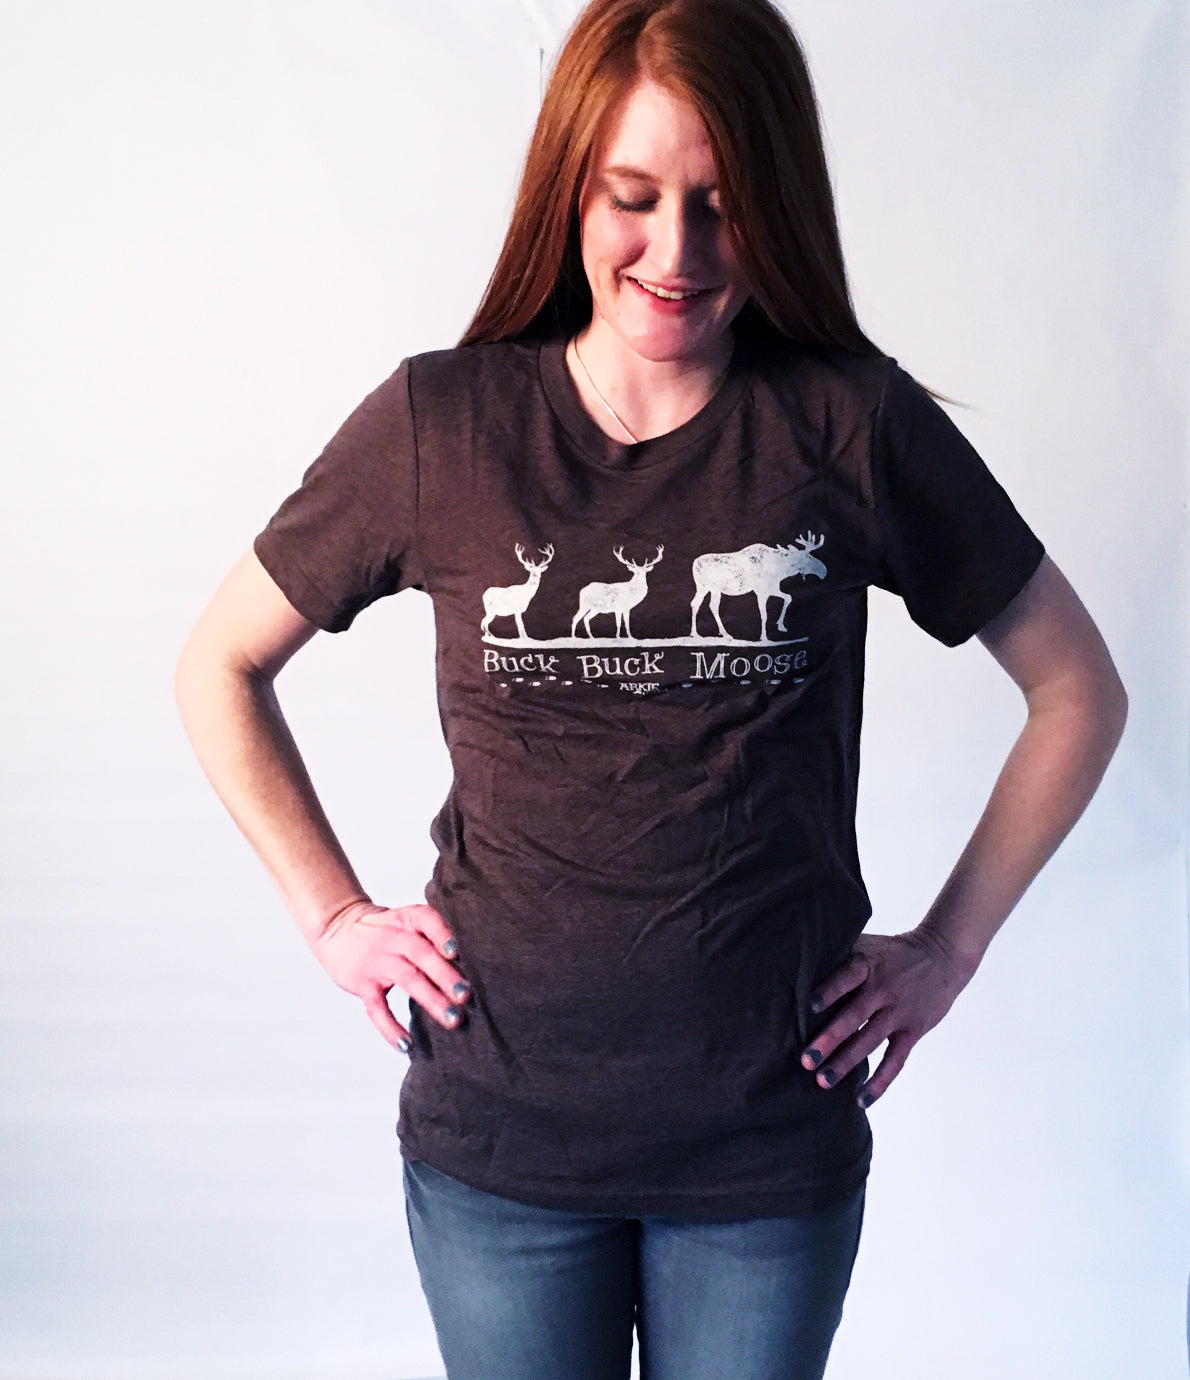 Buck Buck Moose T-shirt